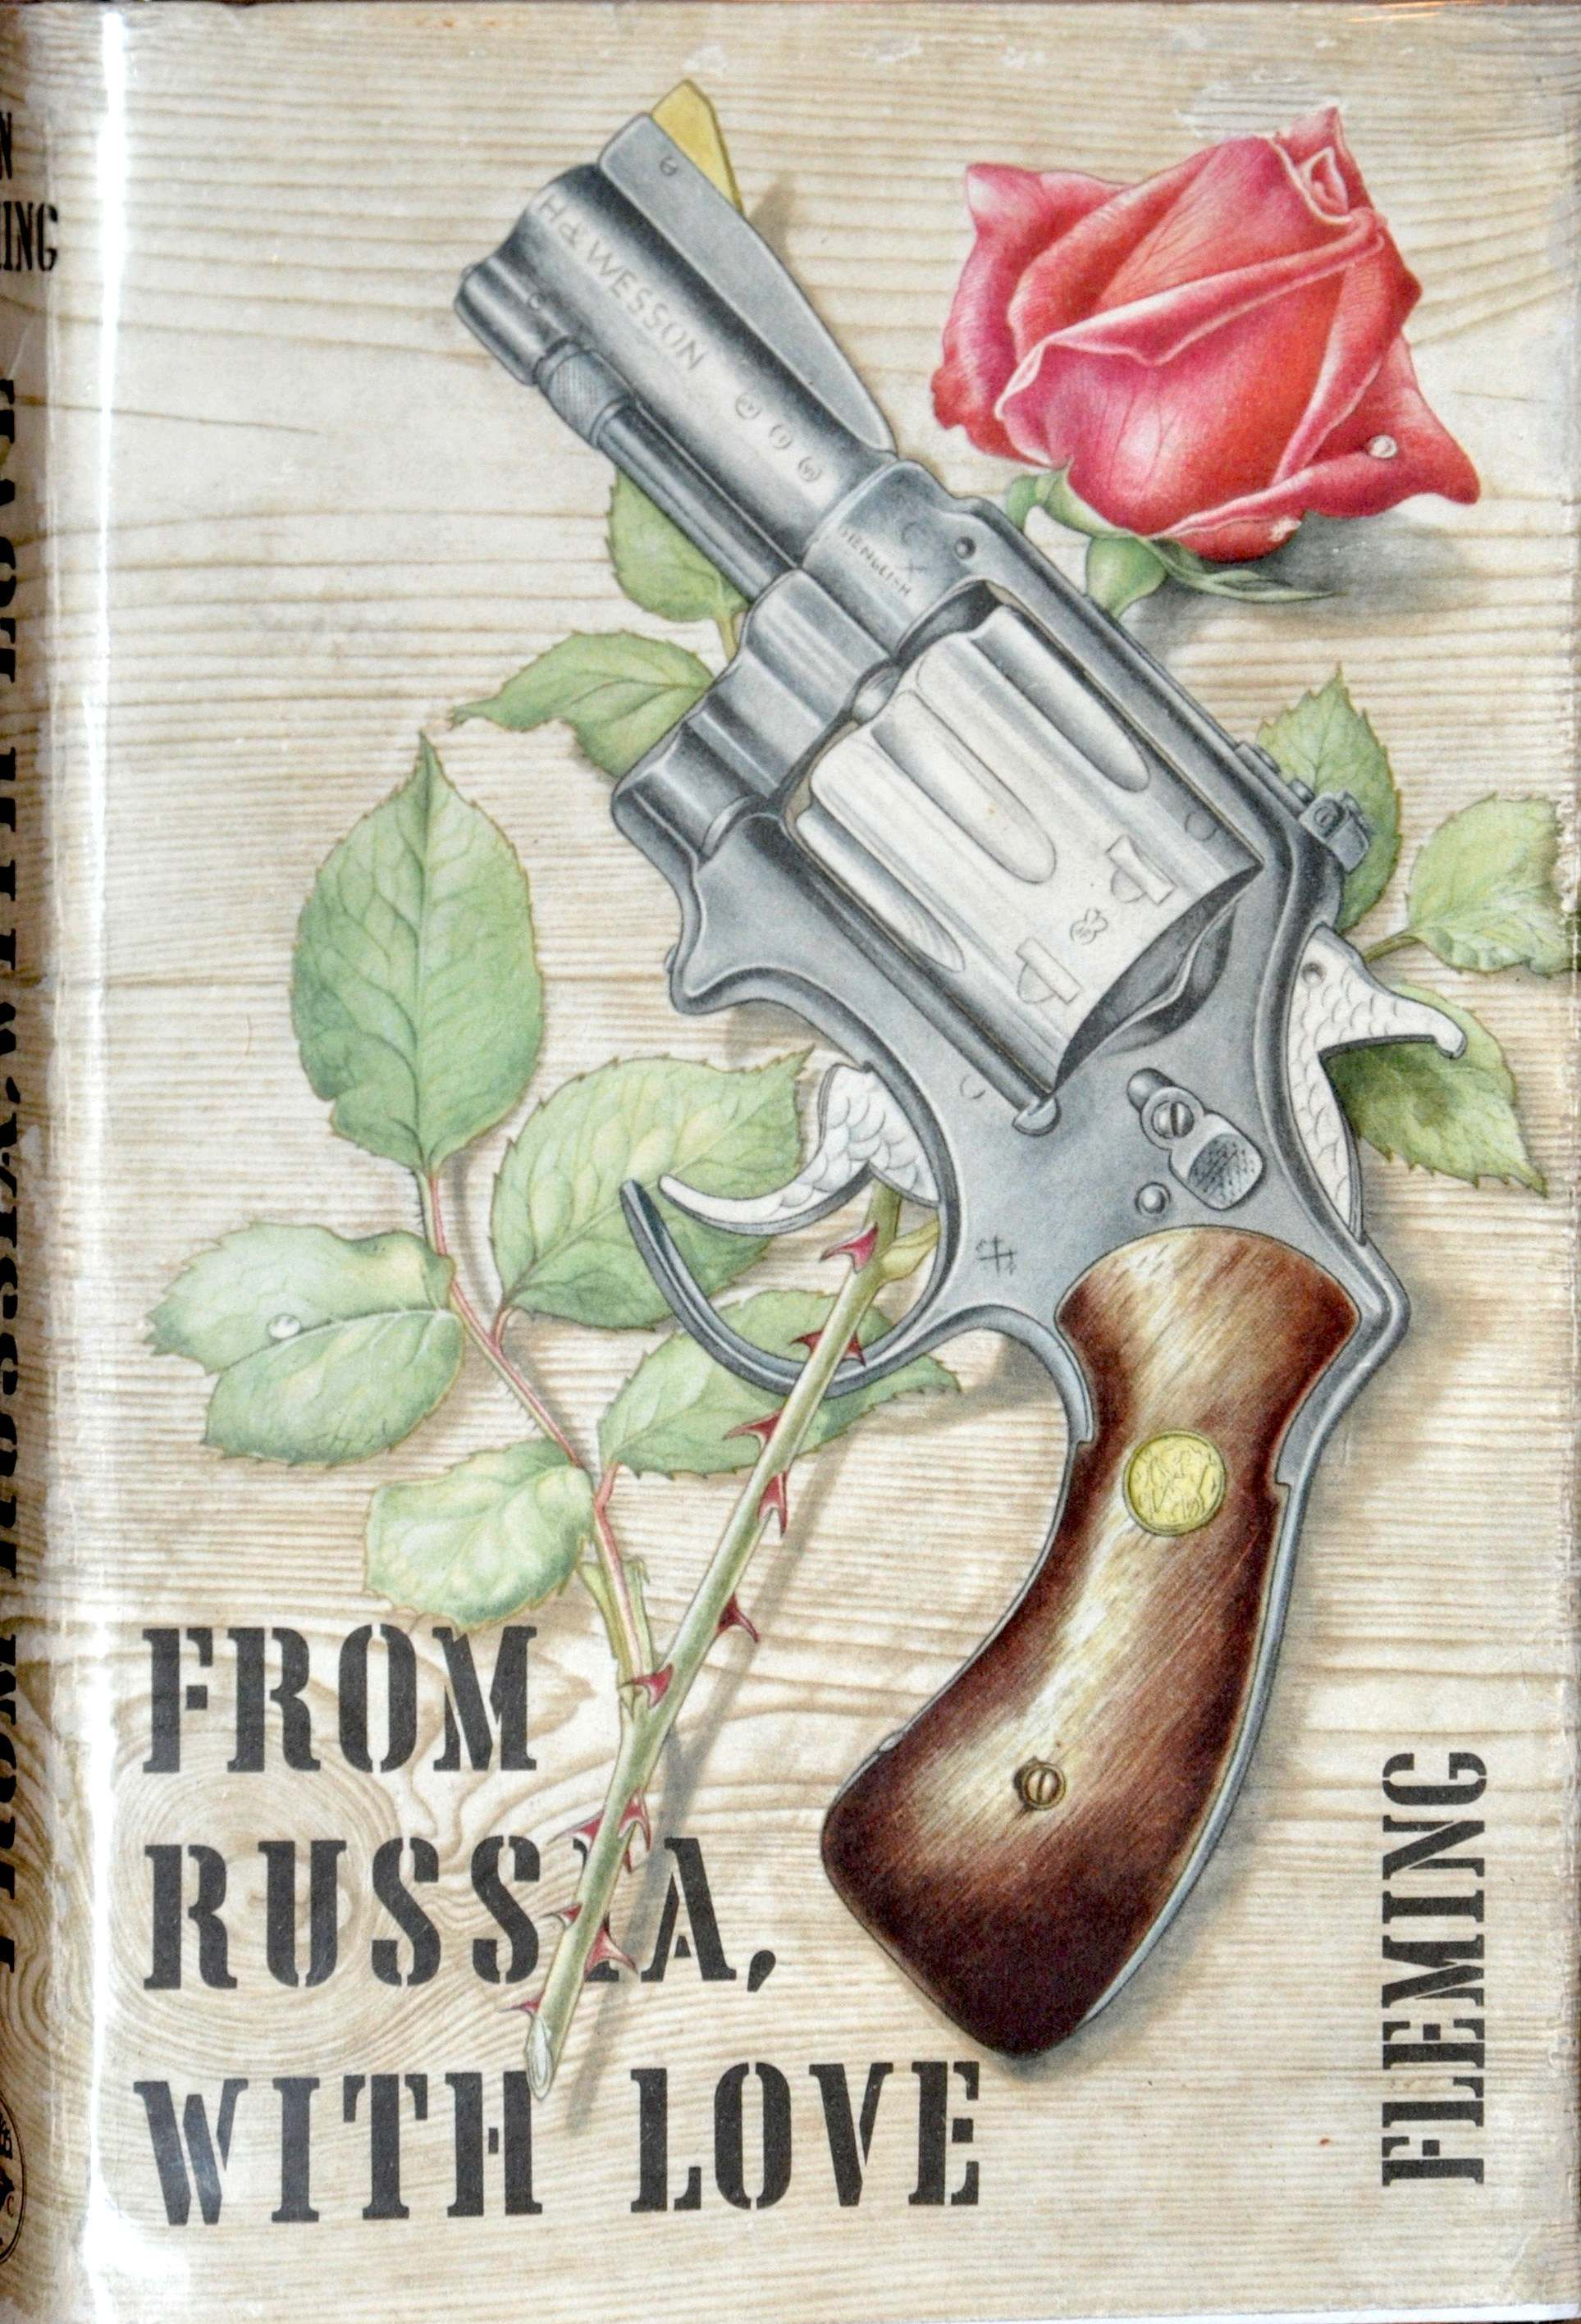 From Russia with Love published by Jonathan Cape in April 1957 for 13s 6d. Cover by Richard Chopping.